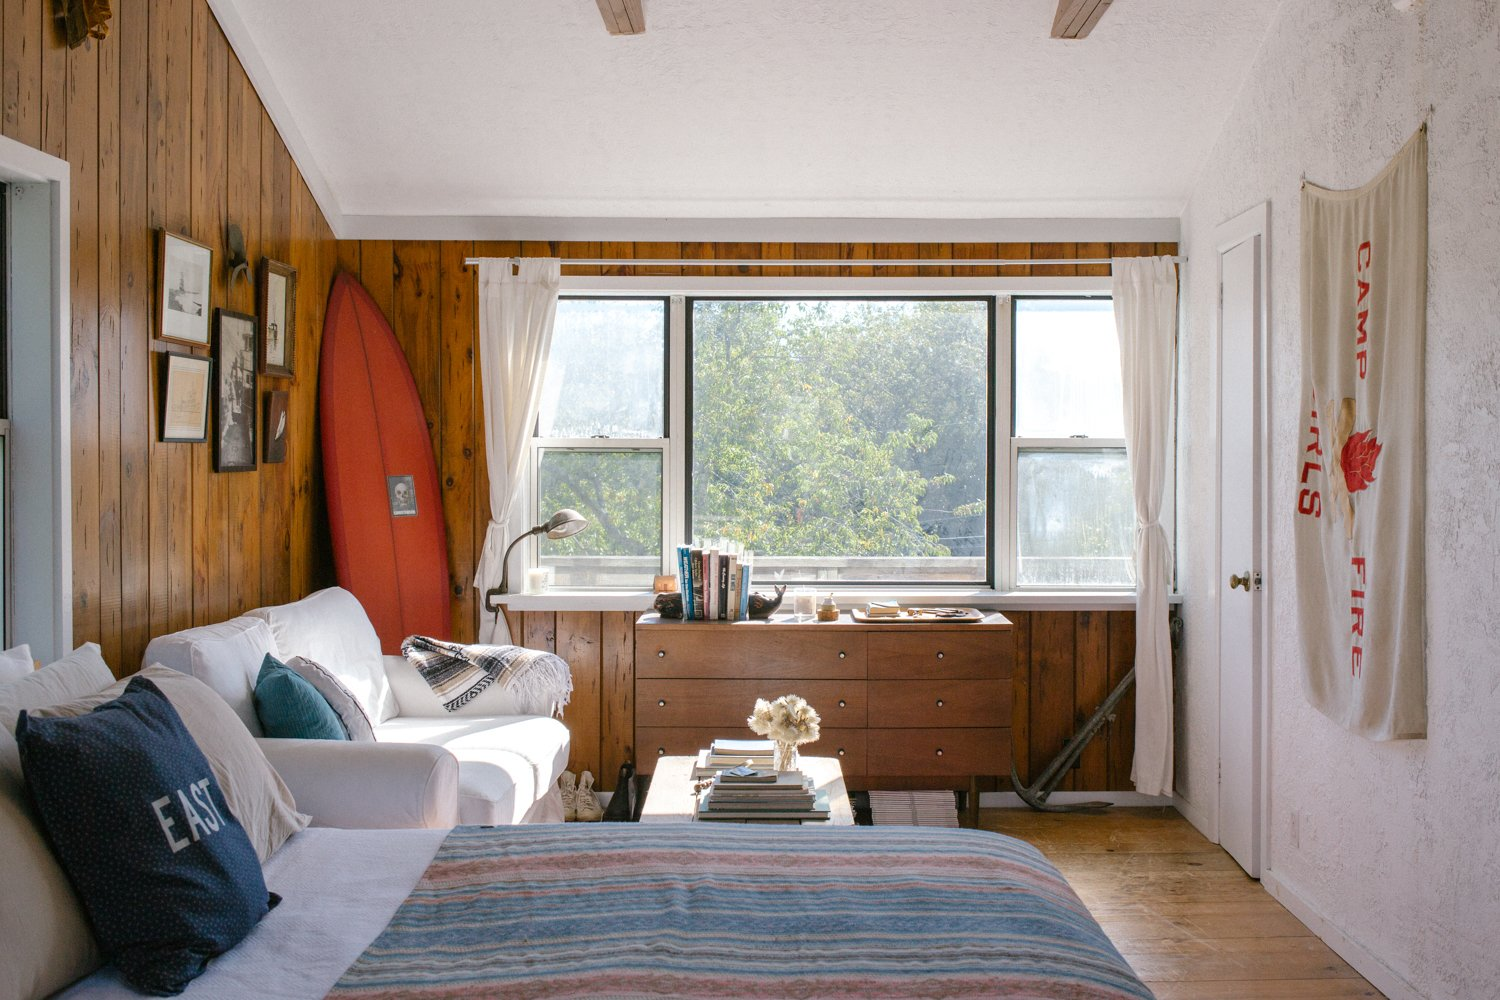 Bedroom, Chair, Medium Hardwood Floor, Bed, Dresser, and Table Lighting Mikey DeTemple's home serves as the perfect Montauk surf shack.  Photo 6 of 7 in At Home with Mikey DeTemple